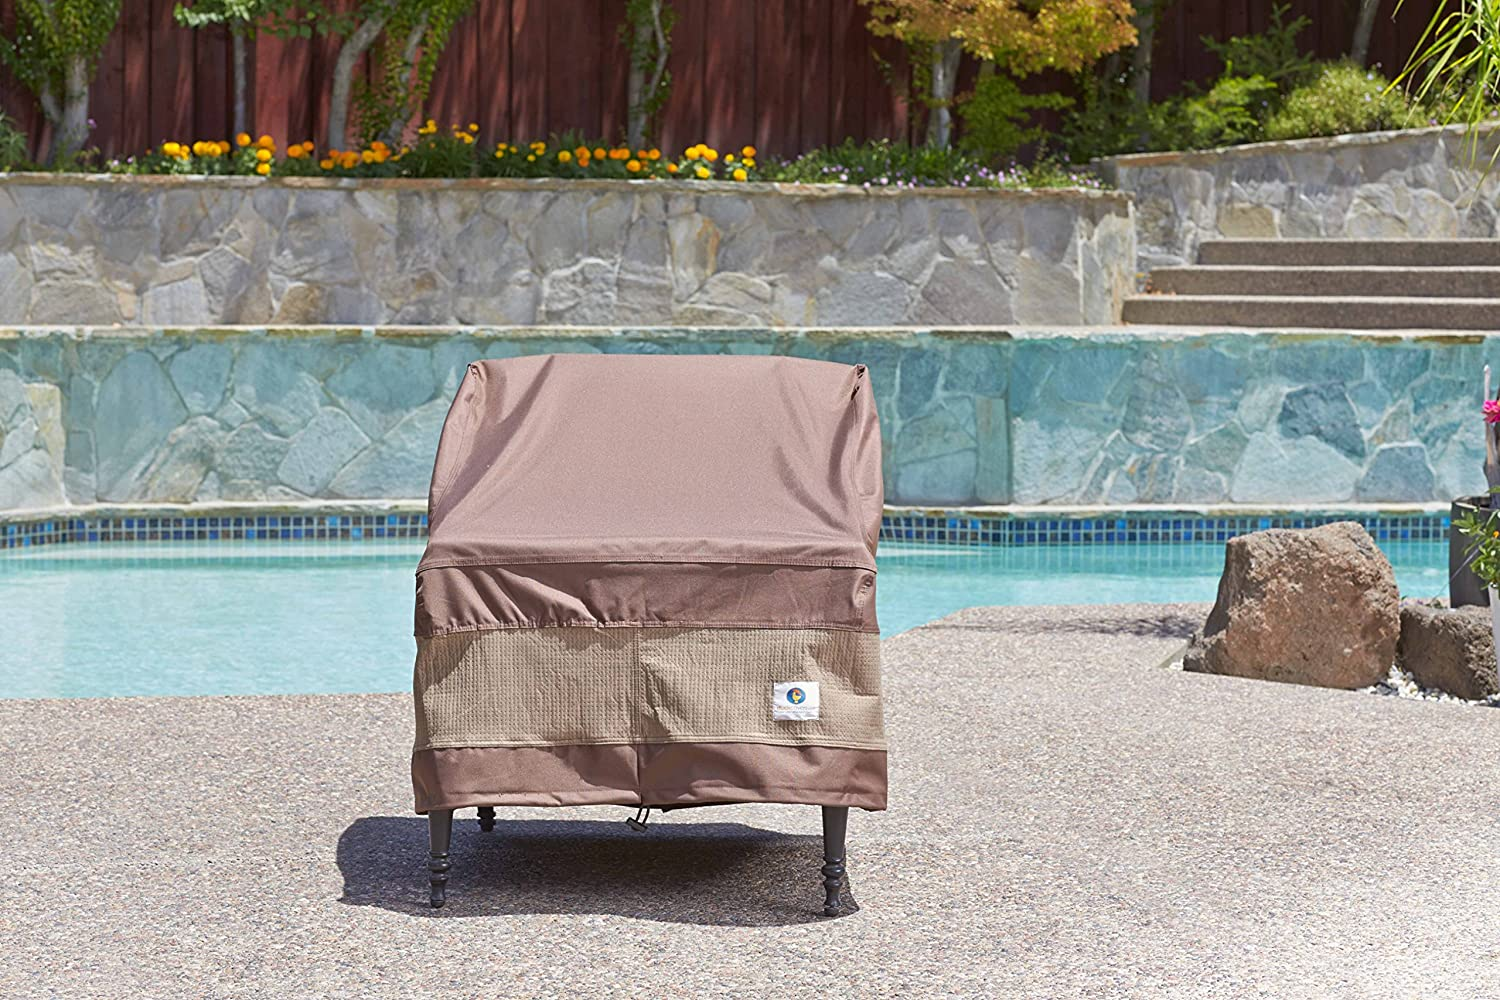 Amazon.com : Duck Covers Ultimate Patio Chair Cover, 40 Inch : Patio, Lawn  U0026 Garden